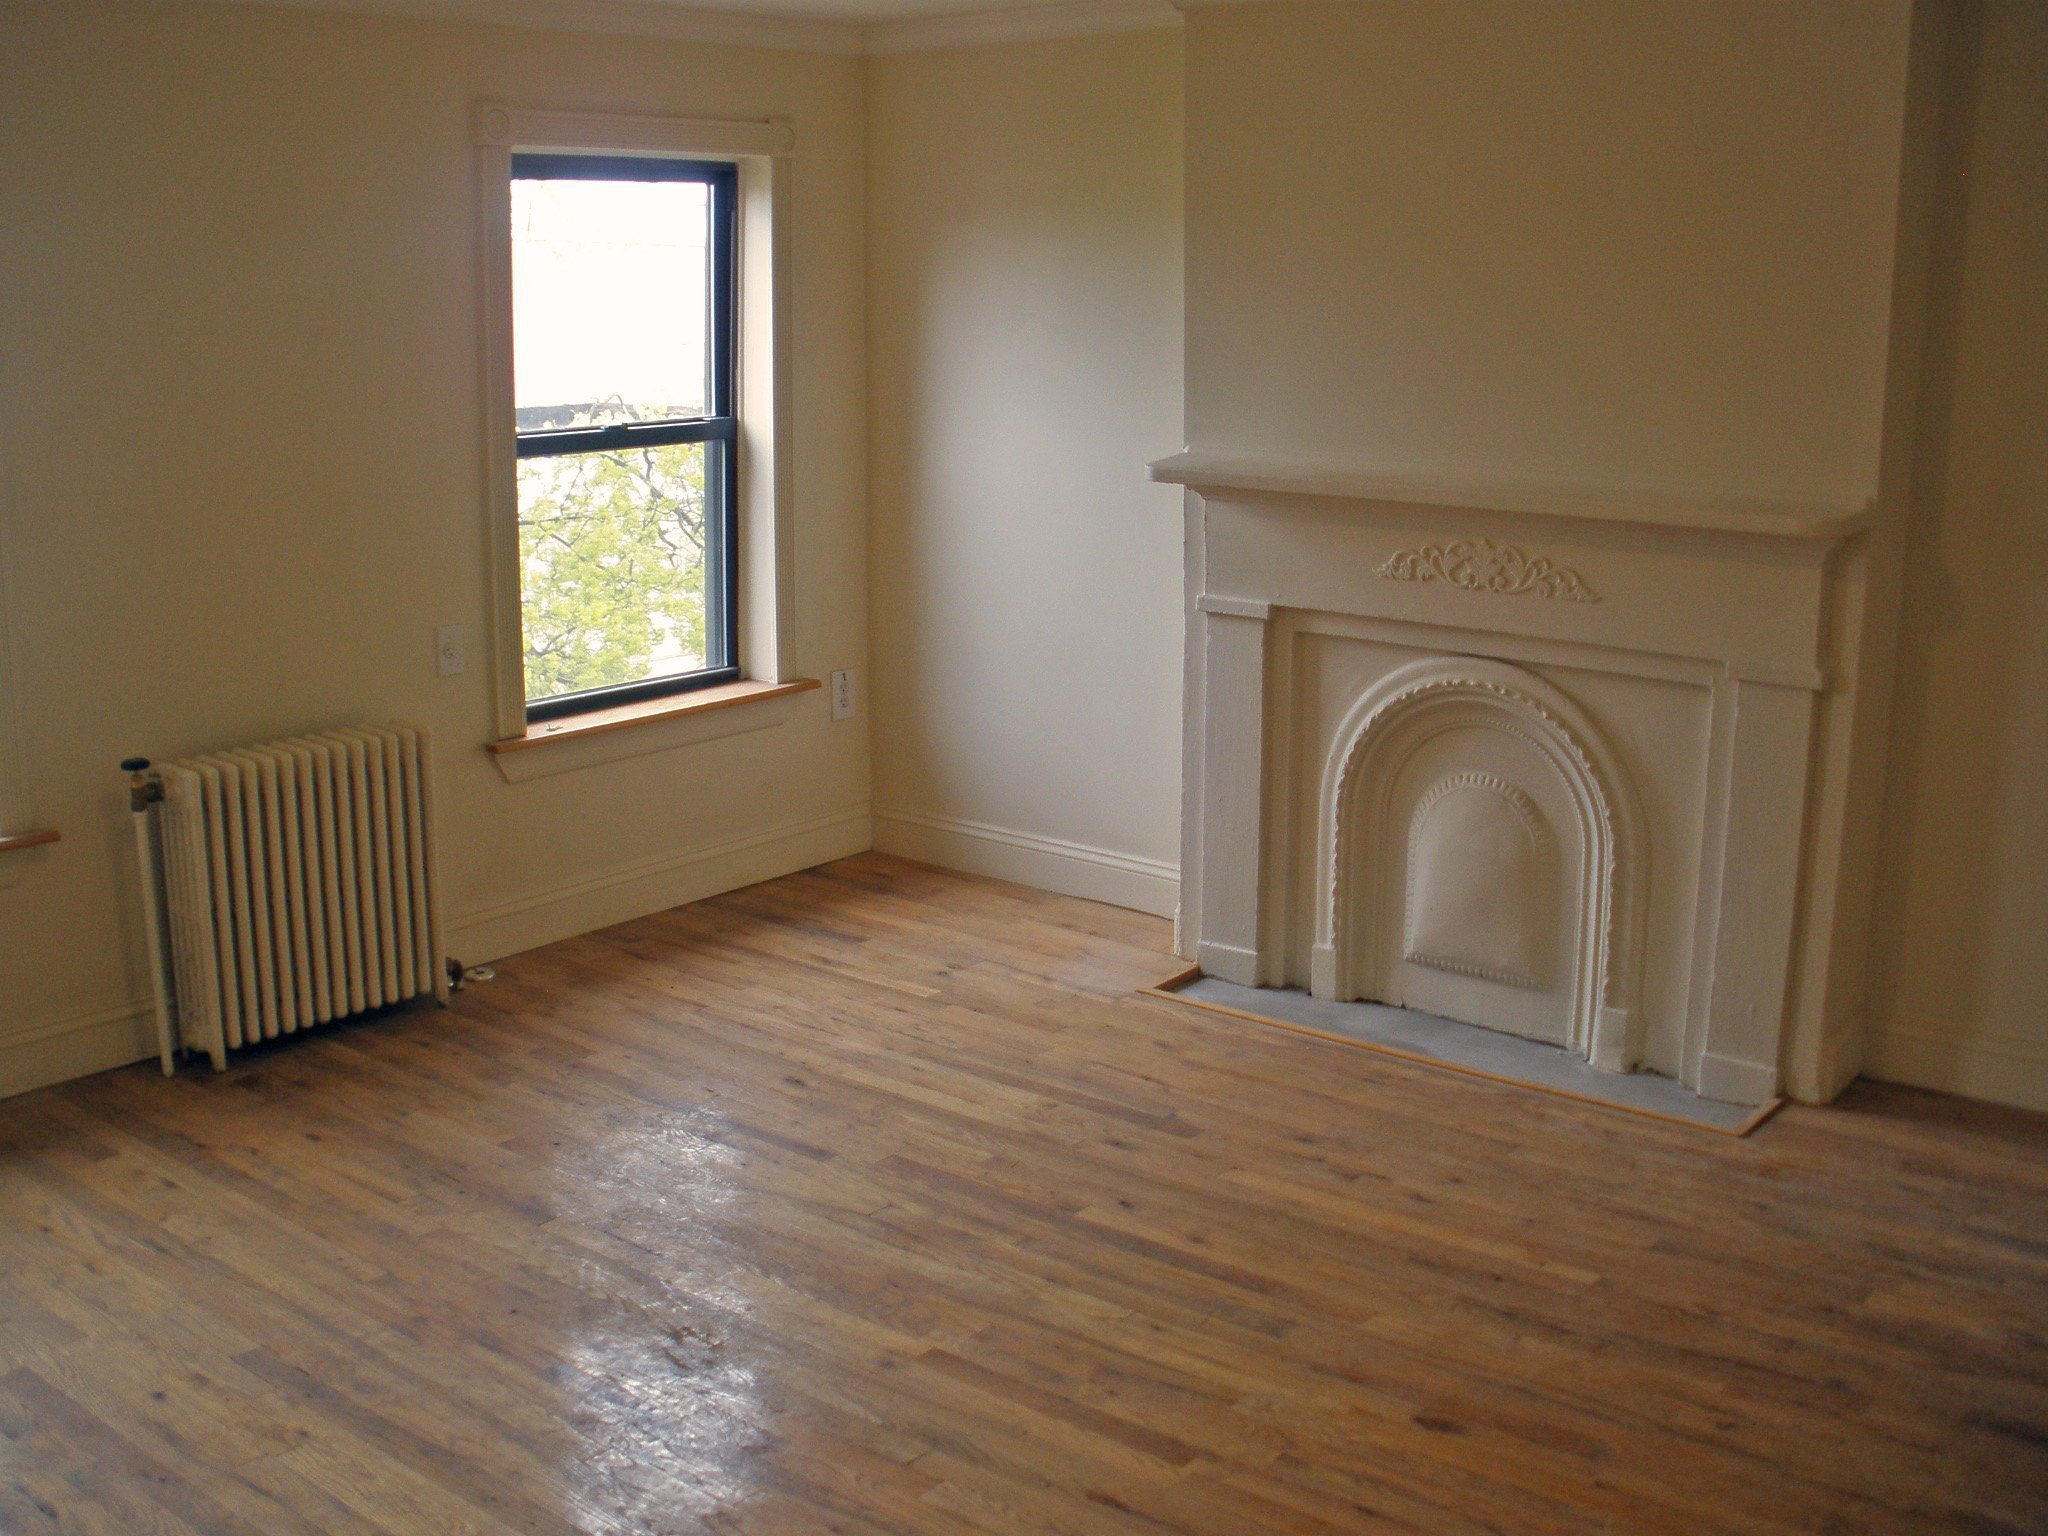 New York Roommate Room For In Flatbush Brooklyn 2 Bedroom